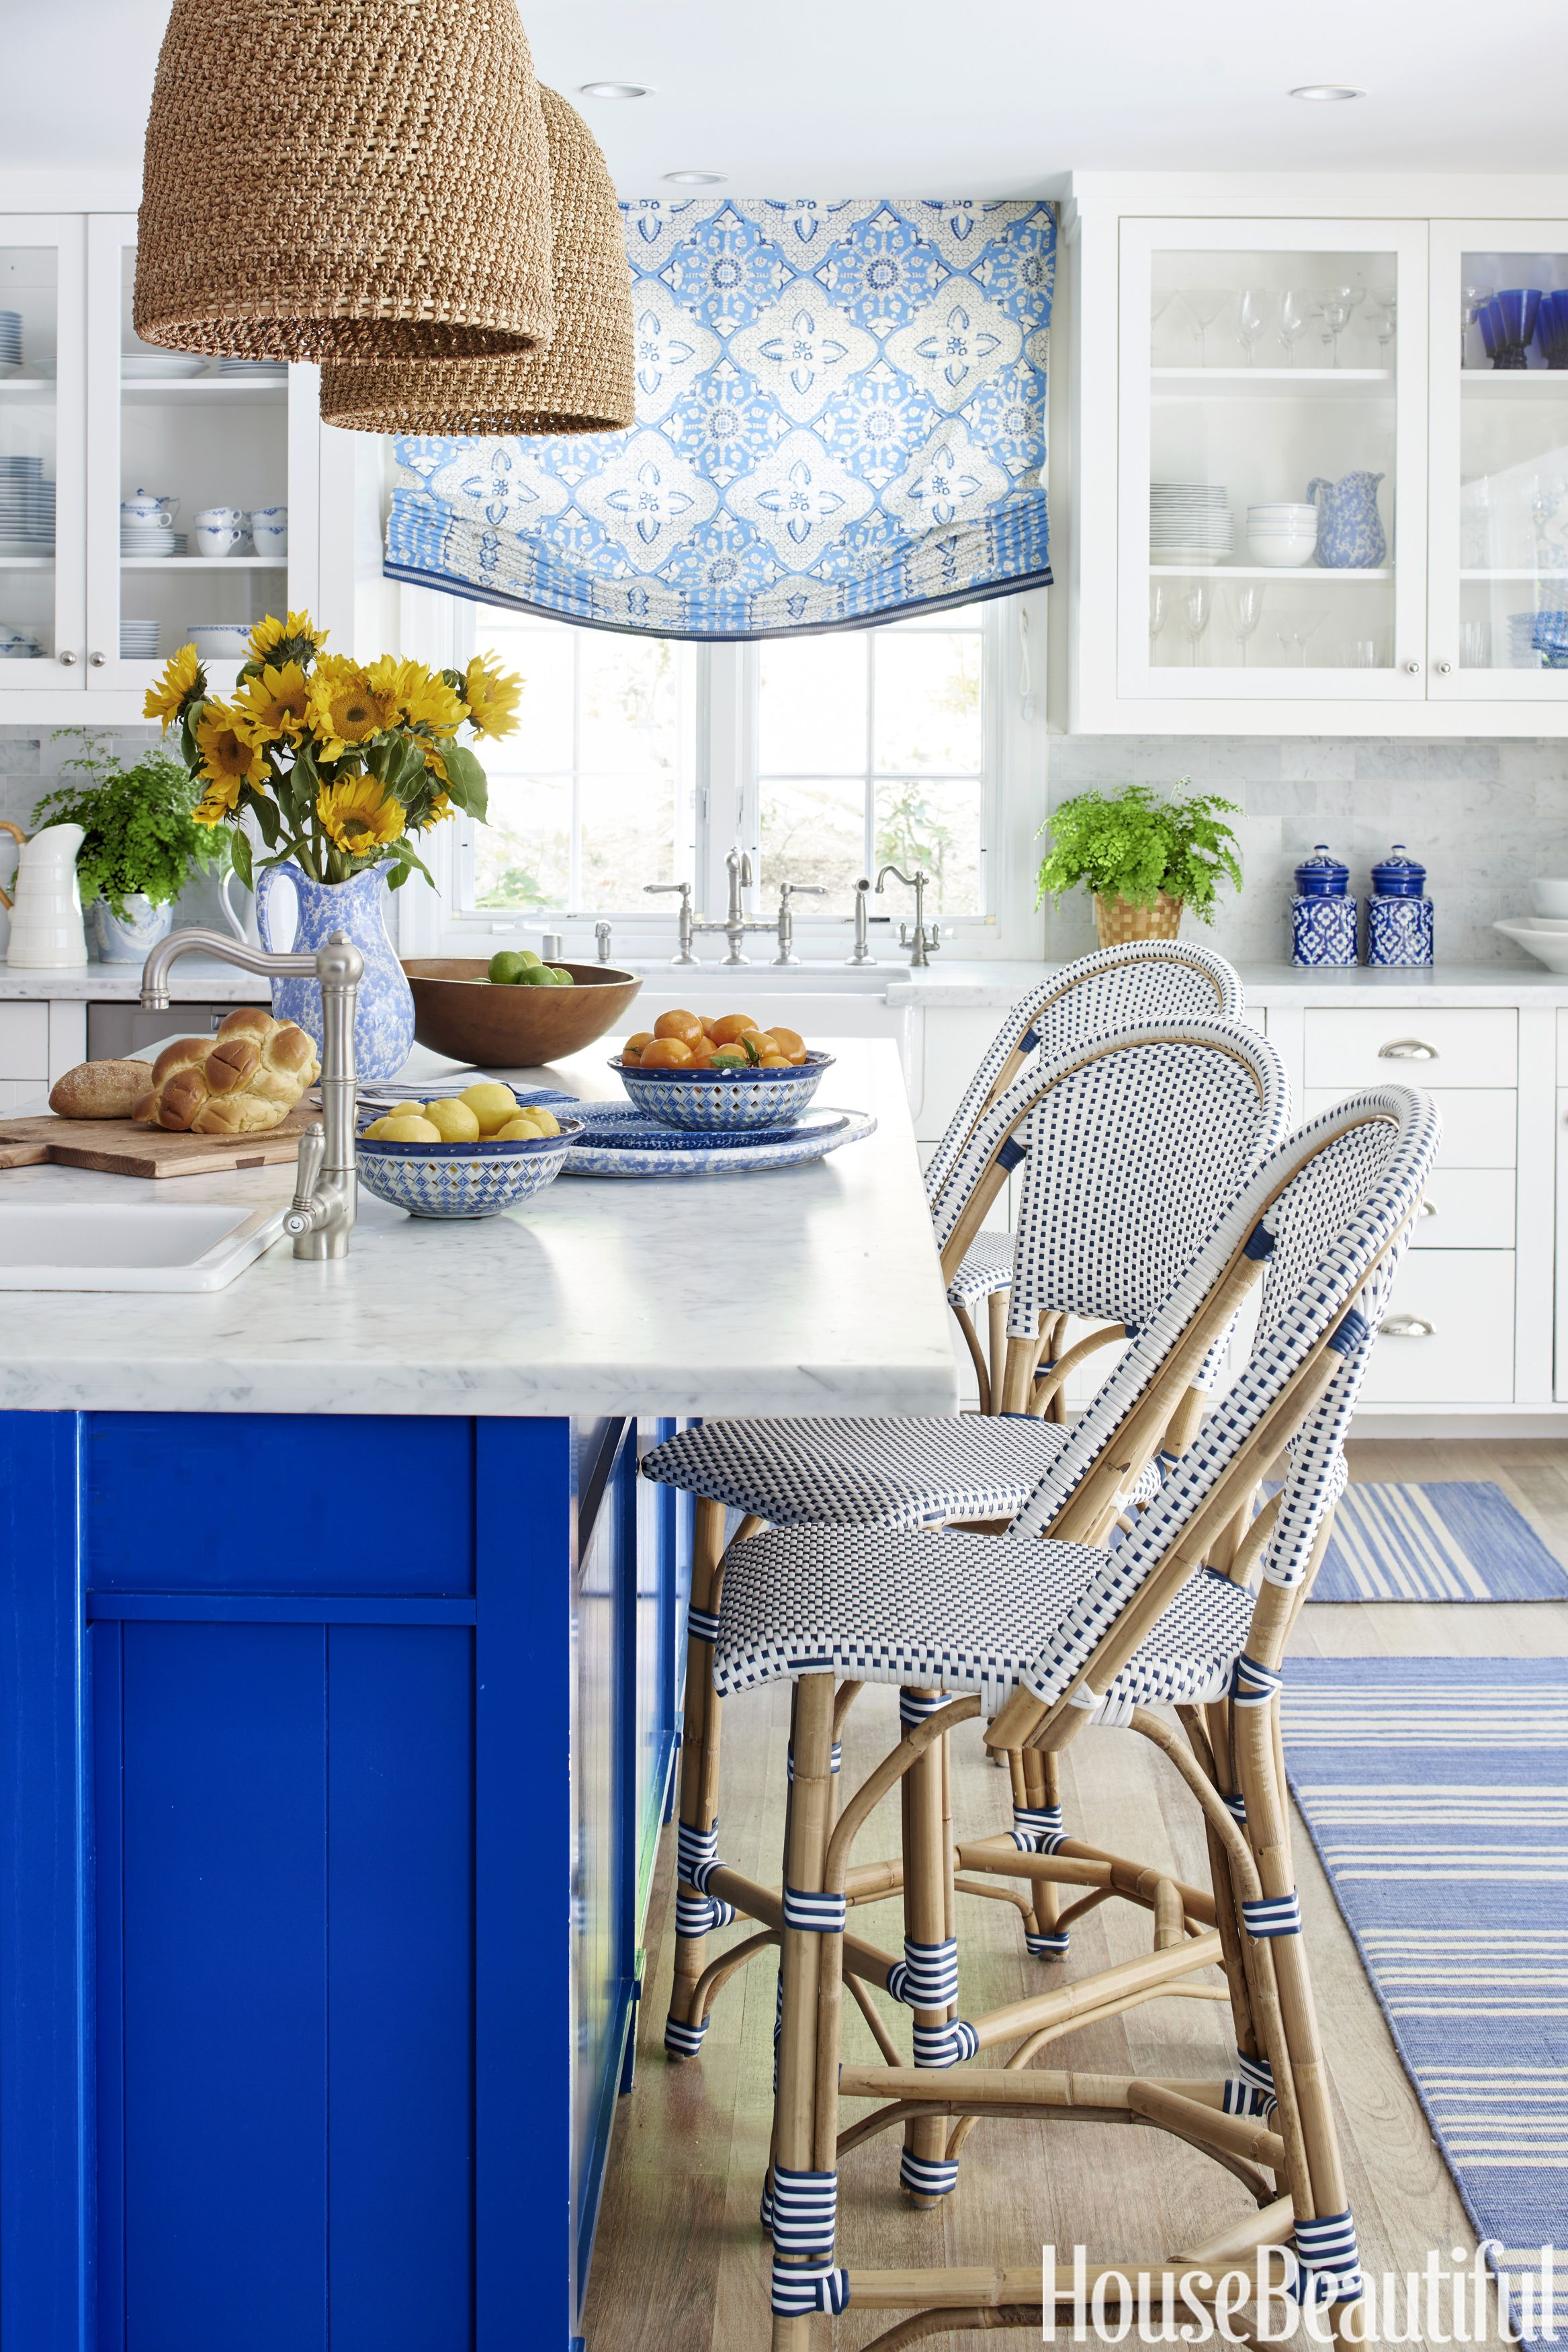 10 Kitchen And Home Decor Items Every 20 Something Needs: A Blue And White Palette Completely Transformed This